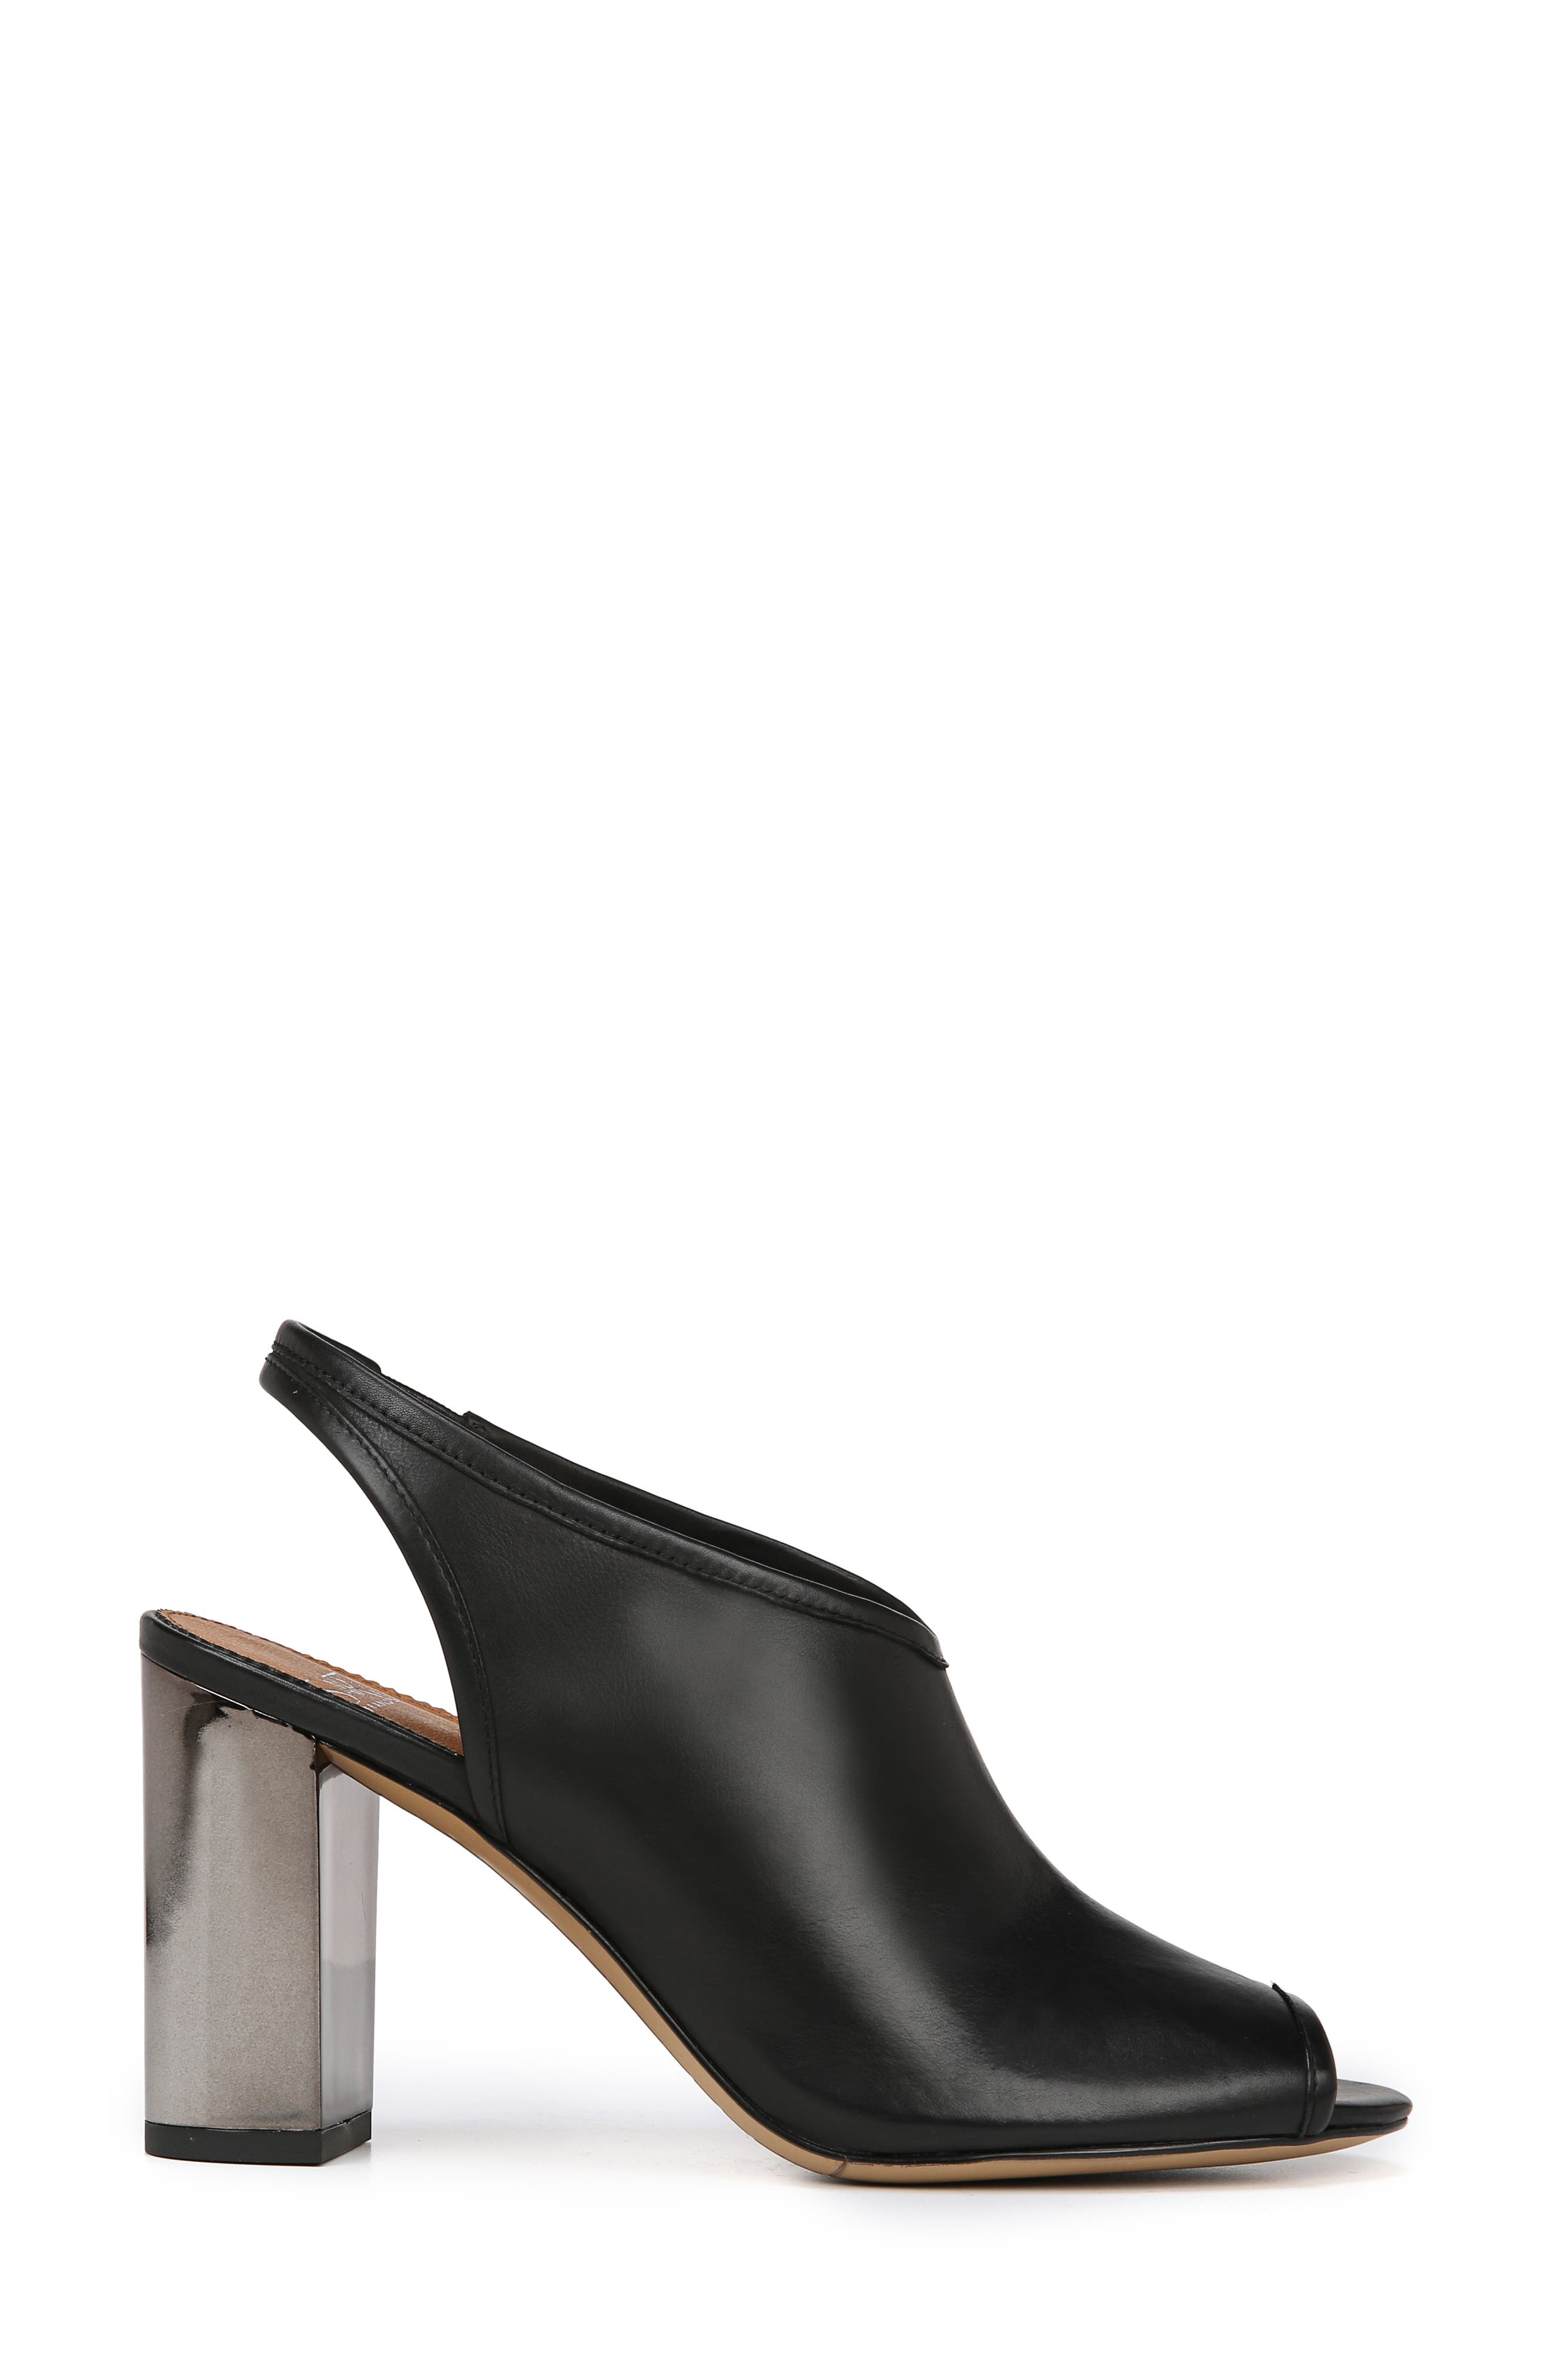 A-Osbourne Slingback Sandal,                             Alternate thumbnail 3, color,                             BLACK FOULARD LEATHER